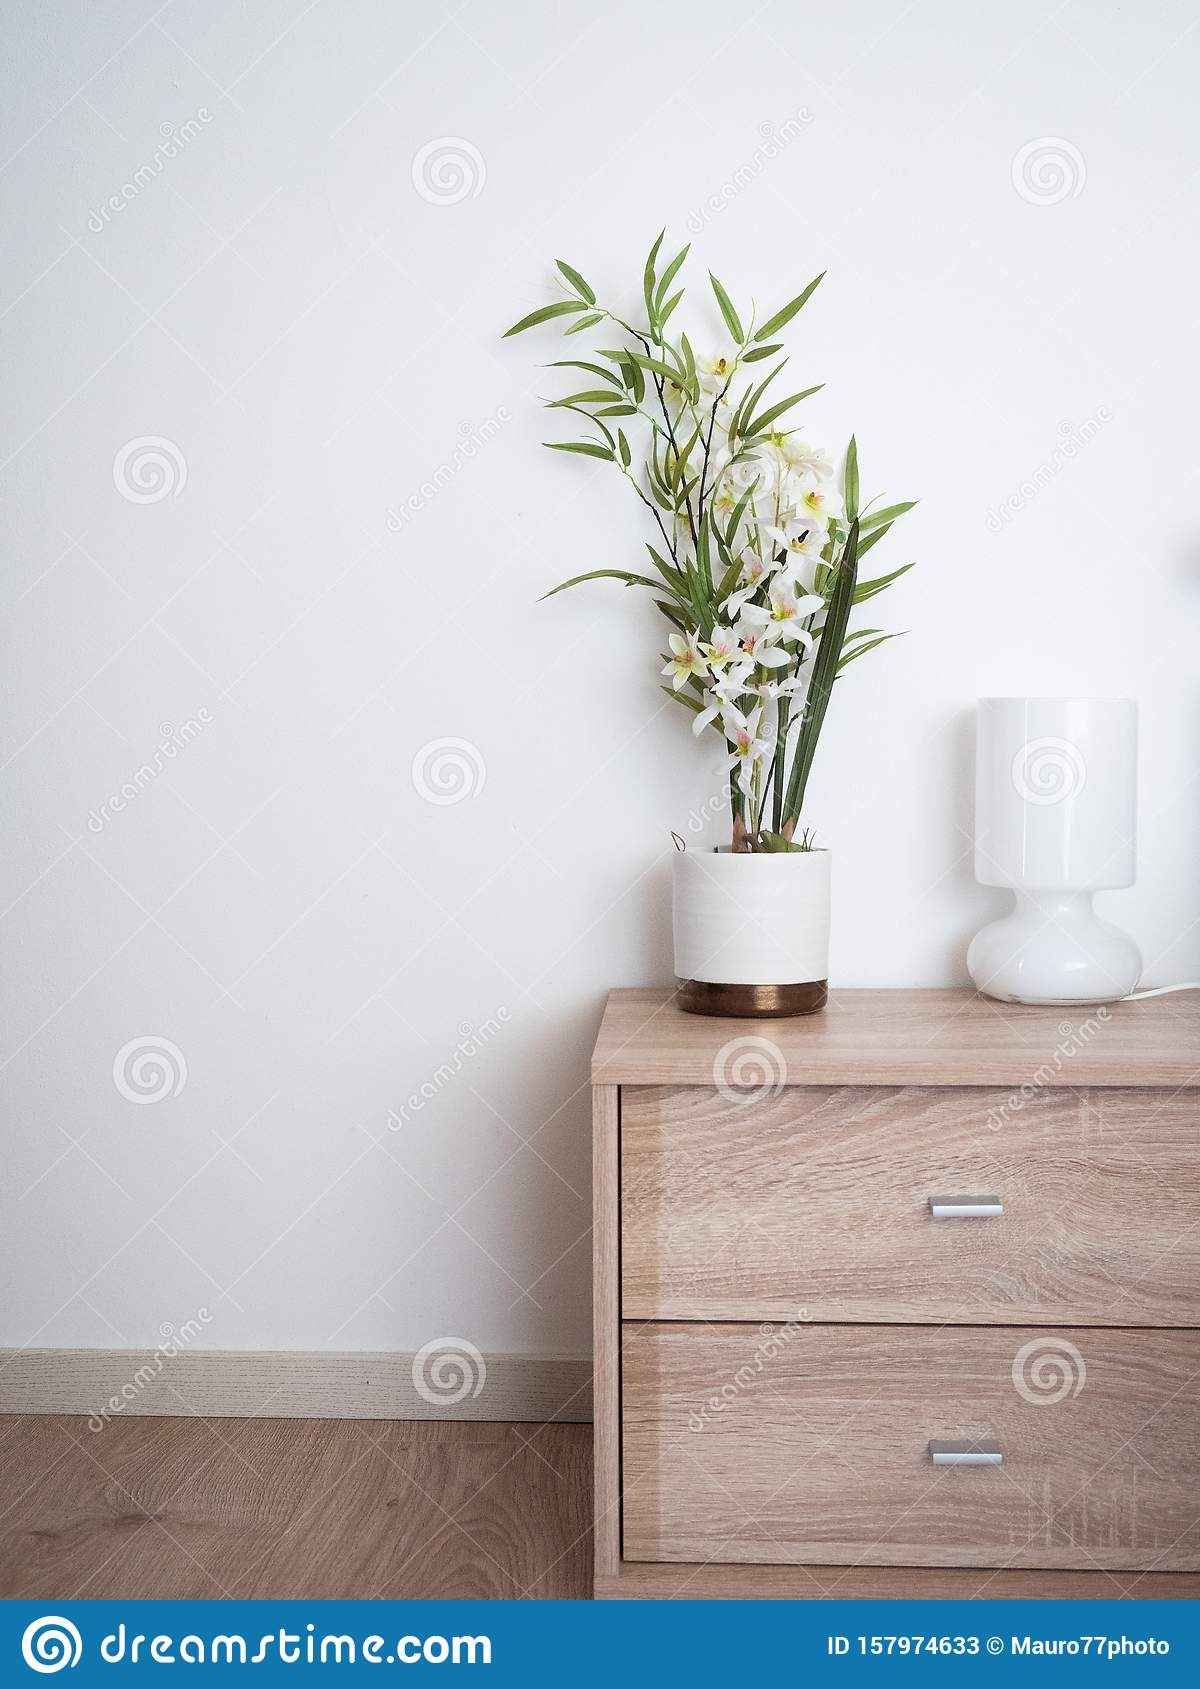 Bedroom Detail With Minimalist Design Stock Image Image Of White Bright 157974633